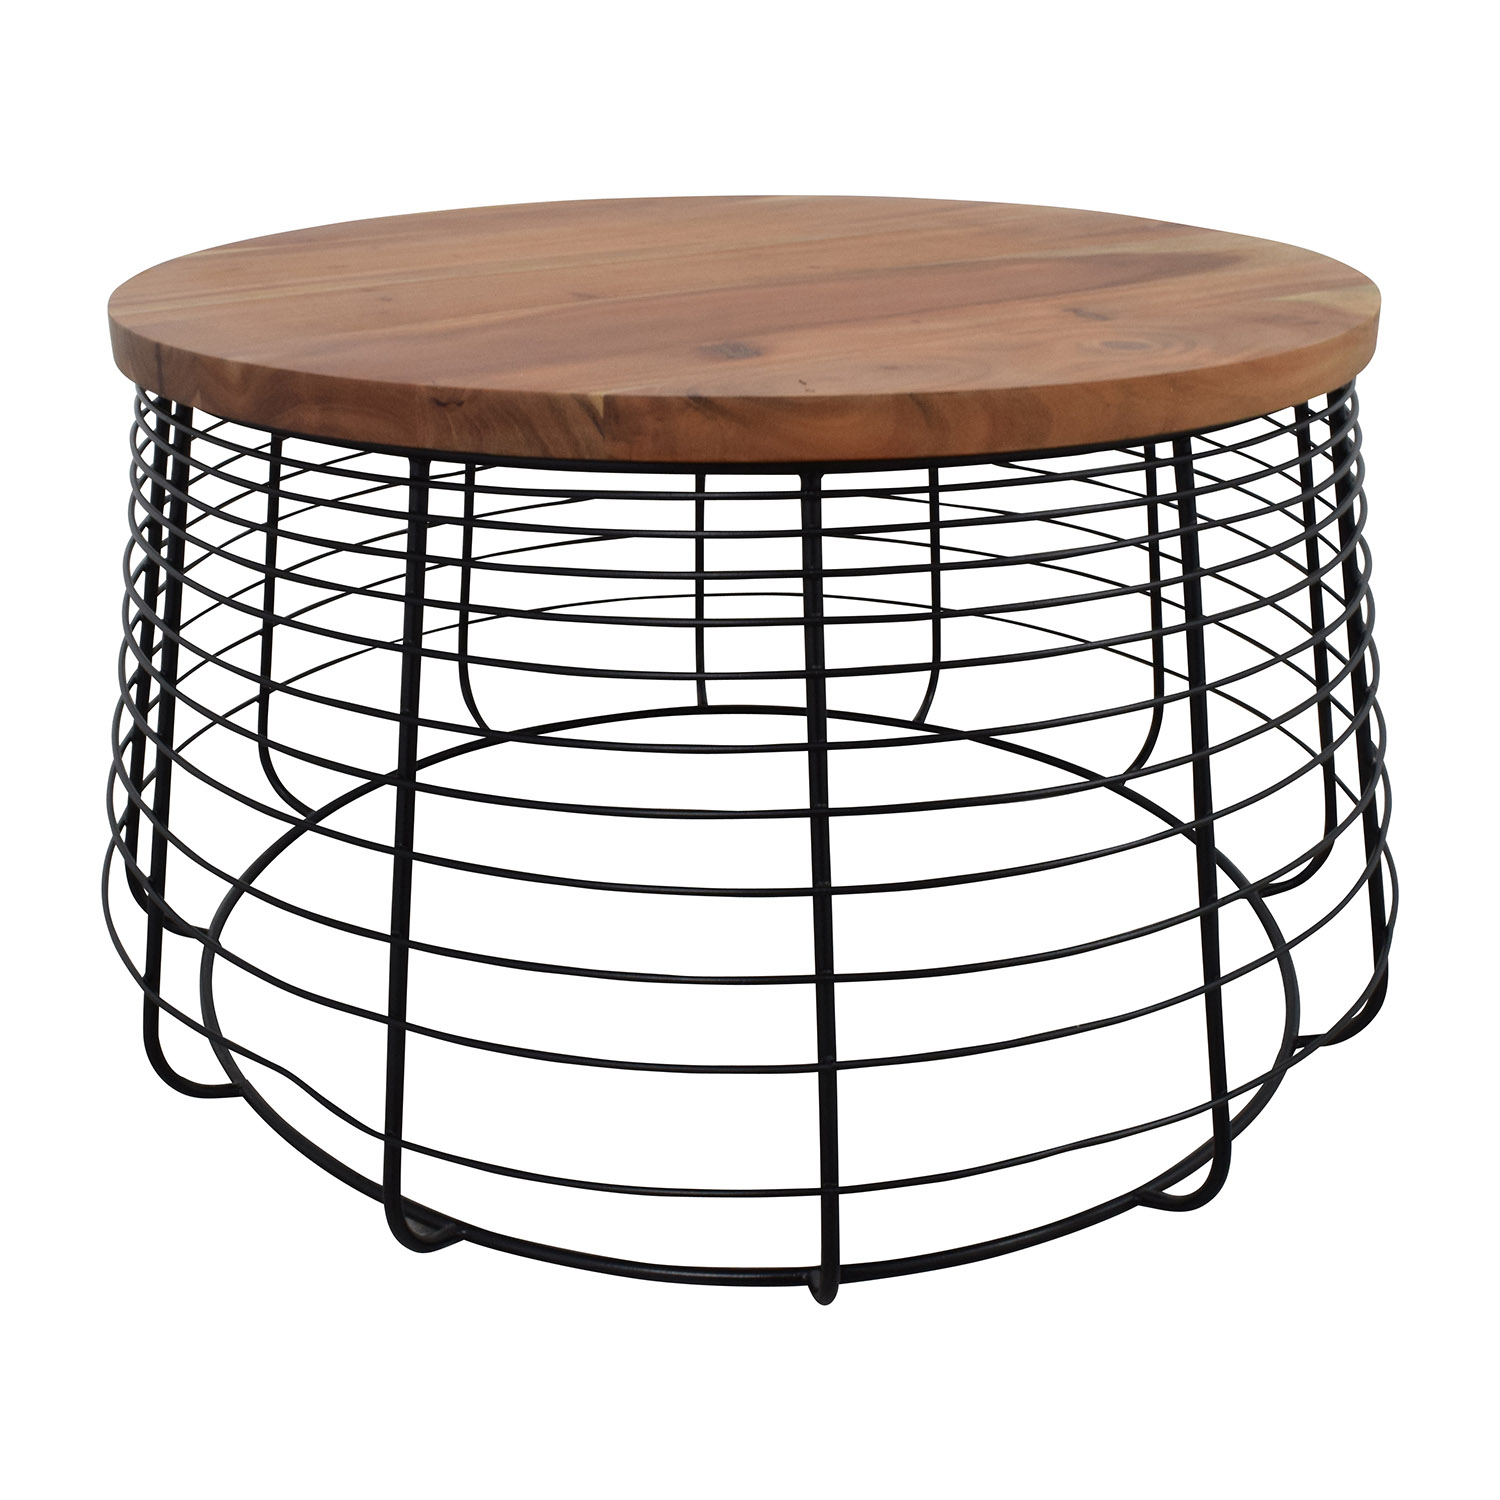 shop CB2 CB2 Round Wire Coffee Table online